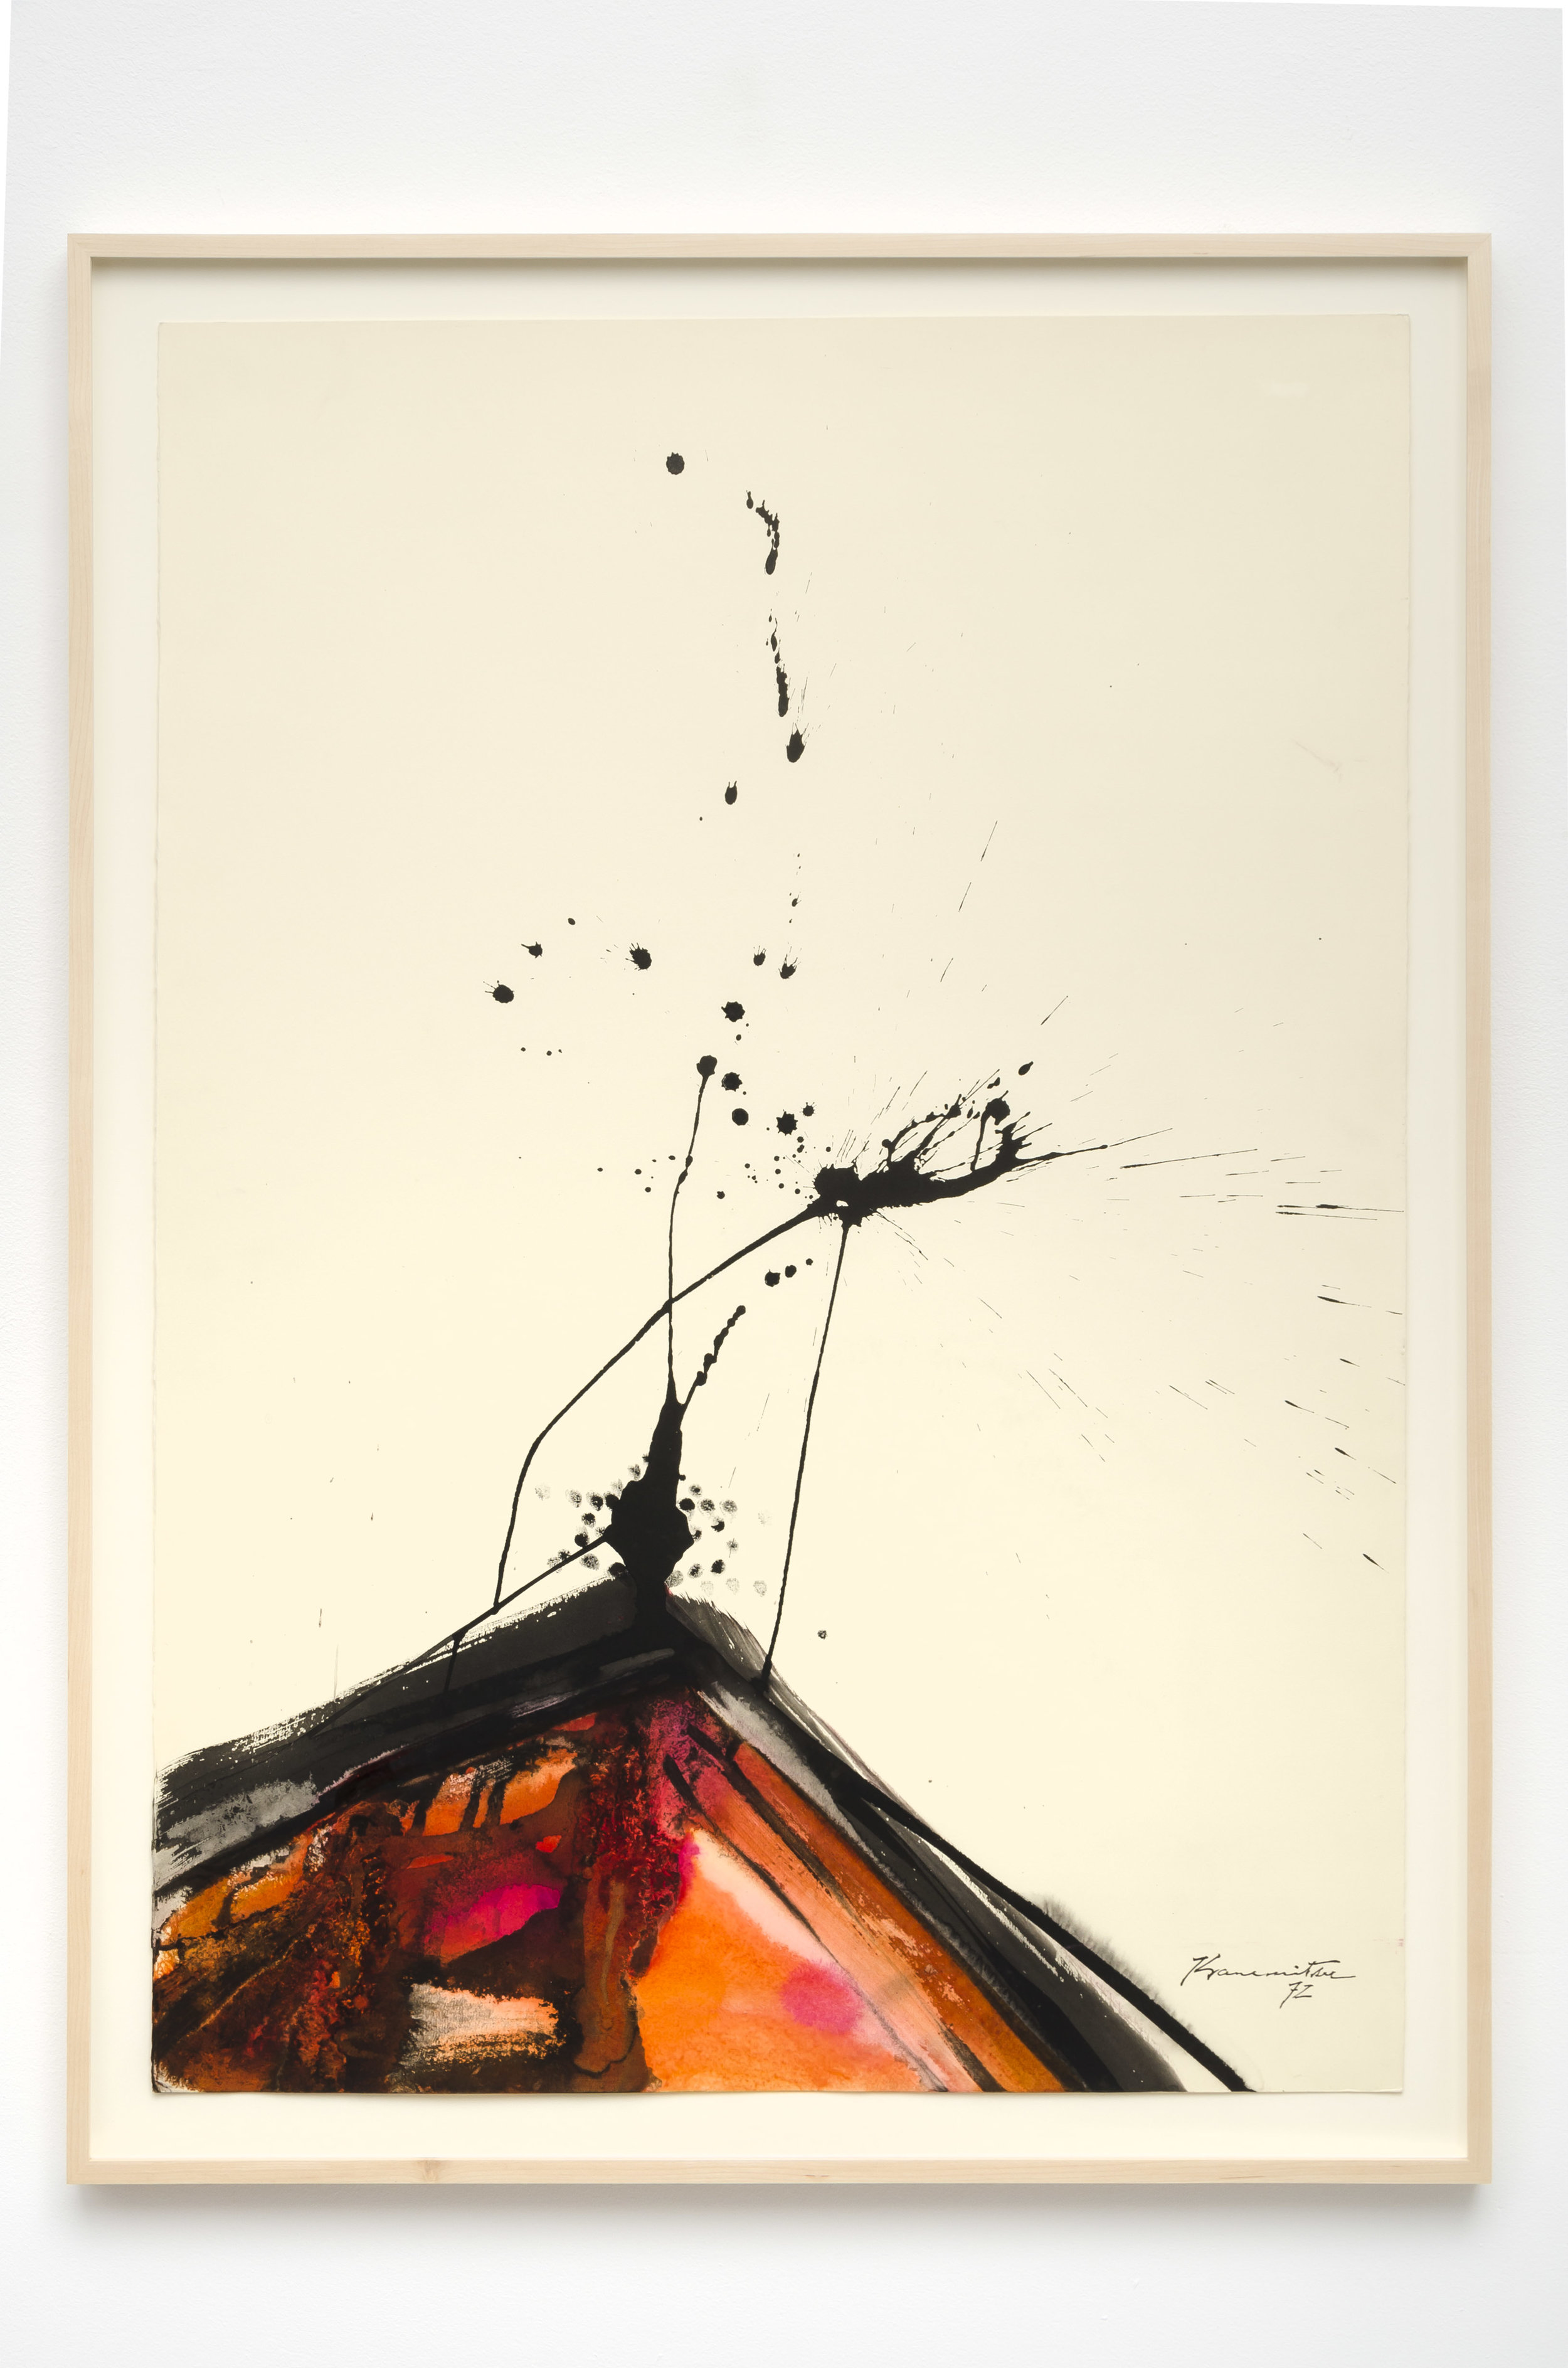 Untitled , 1972 sumi and watercolor on paper 43 x 31.25 inches; 109.2 x 79.4 centimeters